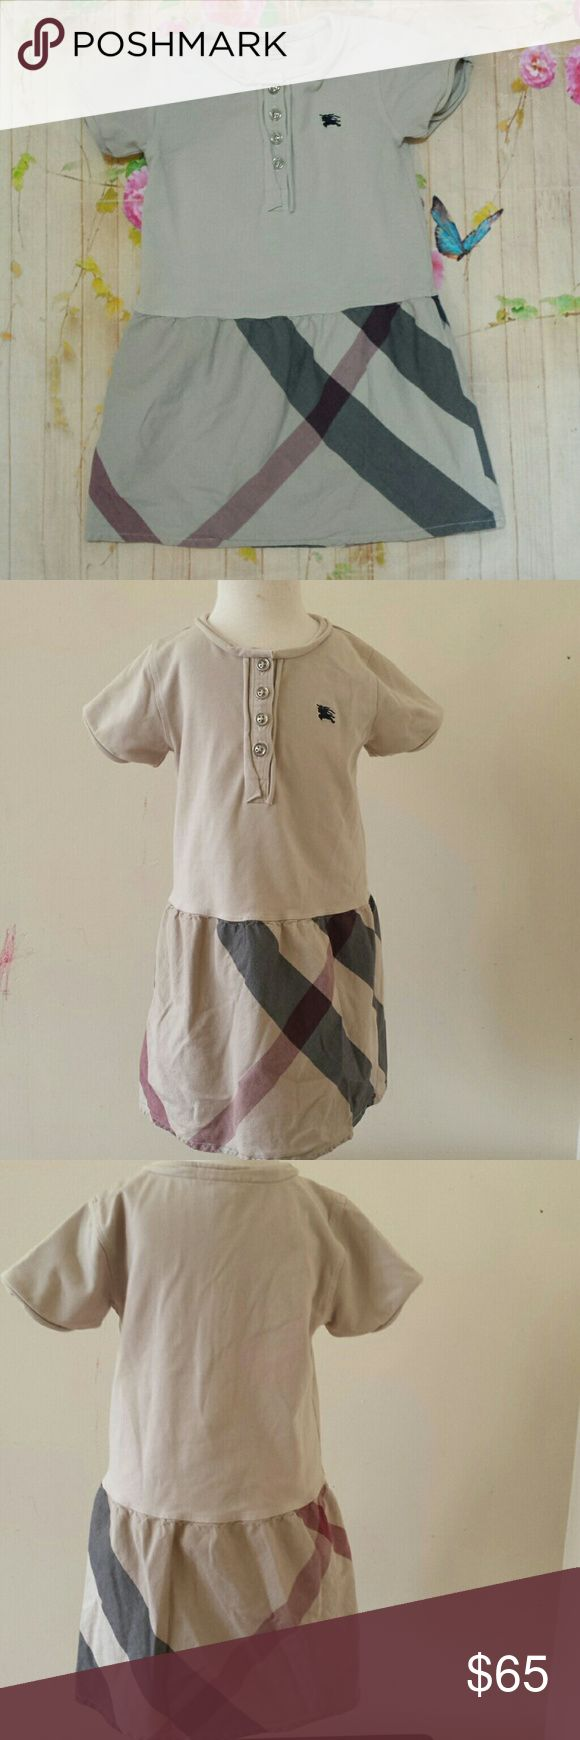 """Classic Burberry Tshirt dress size 2 toddler girl Up for grabs: Cute, classic Burberry t-shirt dress size 2. Light tan / cream color to. Classic check skirt.   Top is 96% cotton, 4% elastane. Skirt is 100% cotton.   10"""" wide, 18"""" long. 4 buttons. short sleeves. c Collar and cuff knit is curling inwards from normal use.  Gently used with no unusual wear.  Smoke-free pet-free home.  Combine items and save on shipping!  contact me with any questions. Burberry Dresses"""